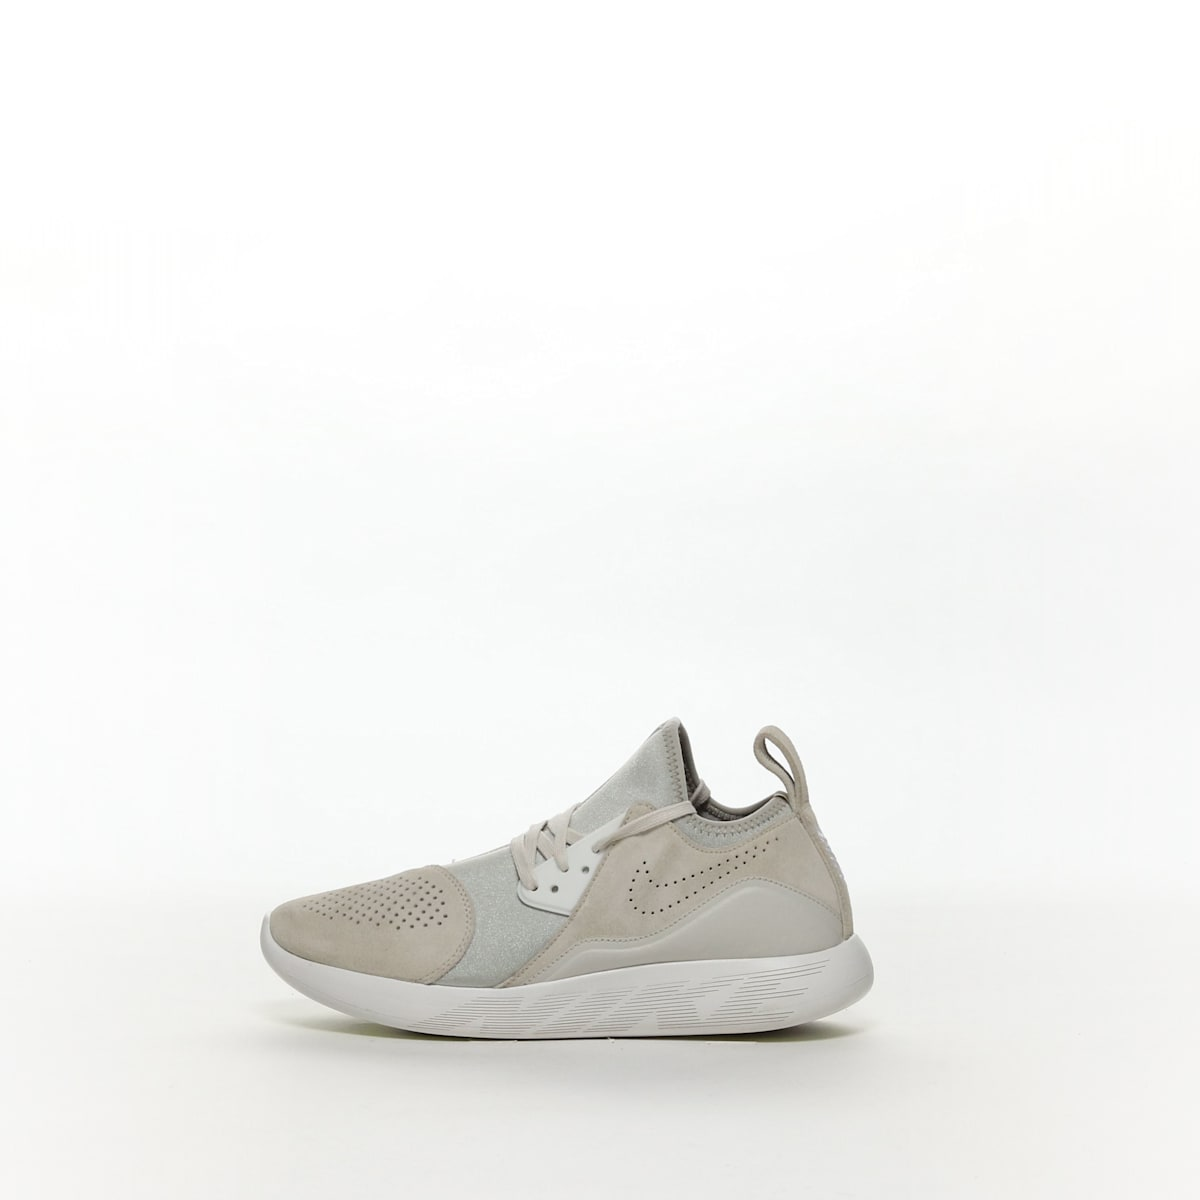 new product a9ad6 35669 Nike LunarCharge Premium - LIGHT BONE/PALE GREY/VOLT/SUMMIT WHITE ...